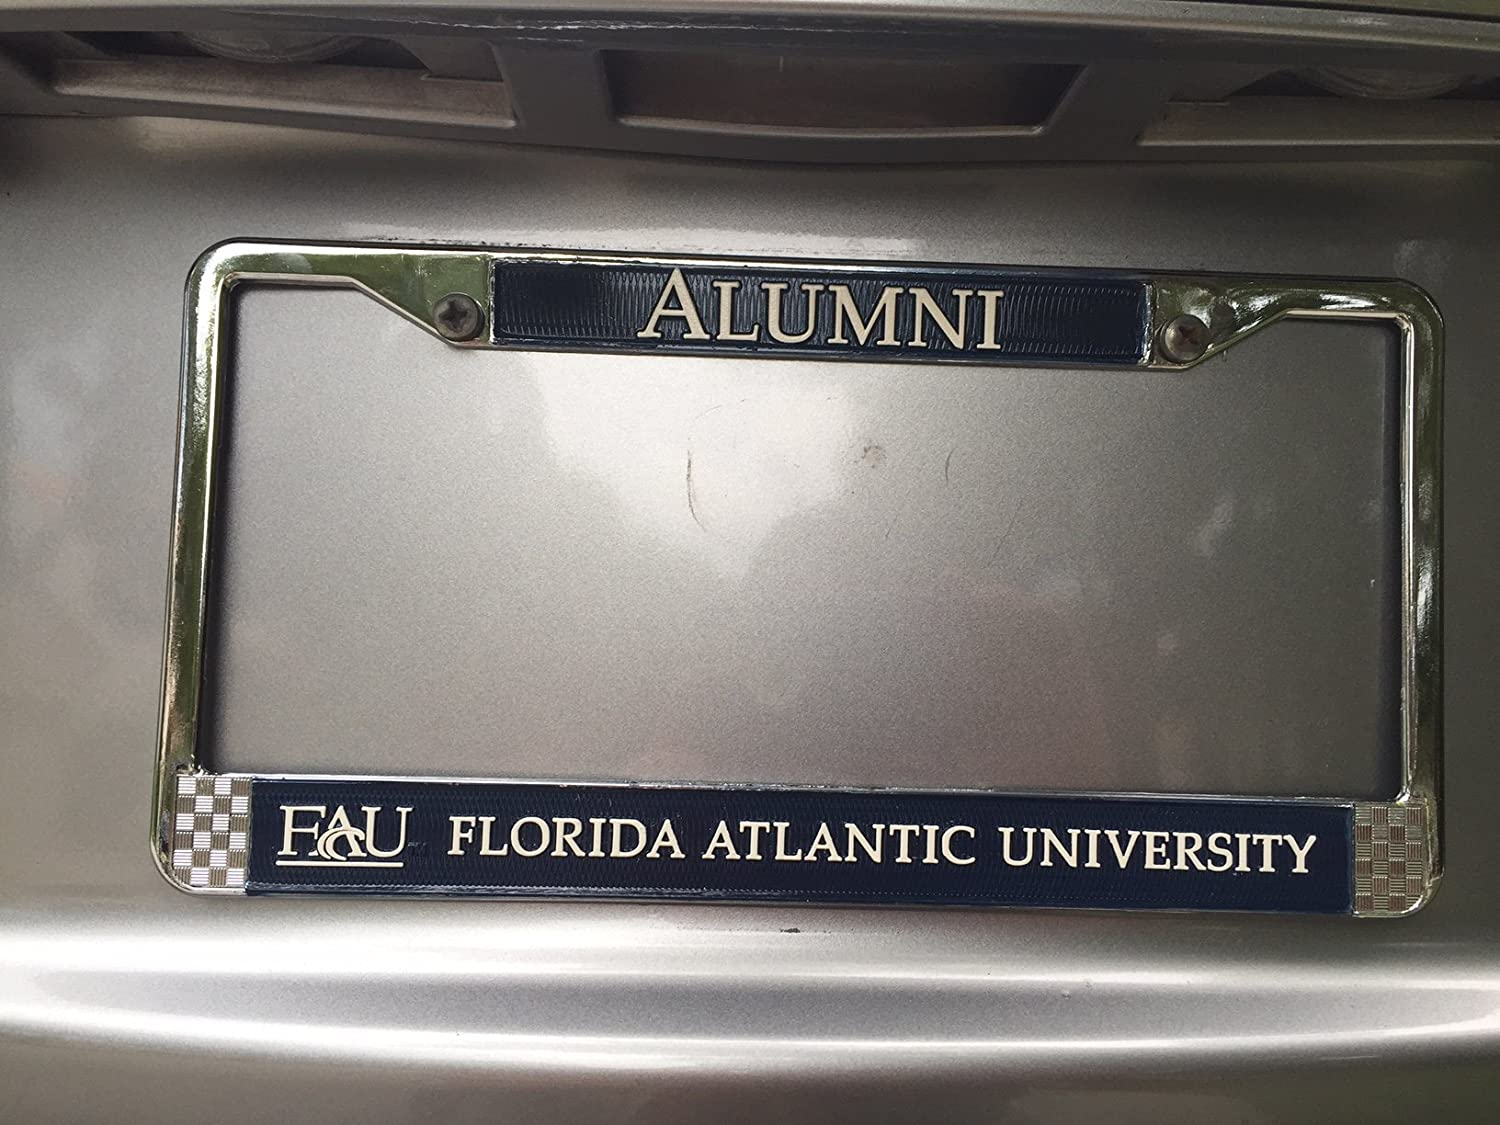 Amazon.com: Florida Atlantic University Alumni License Plate Frame ...